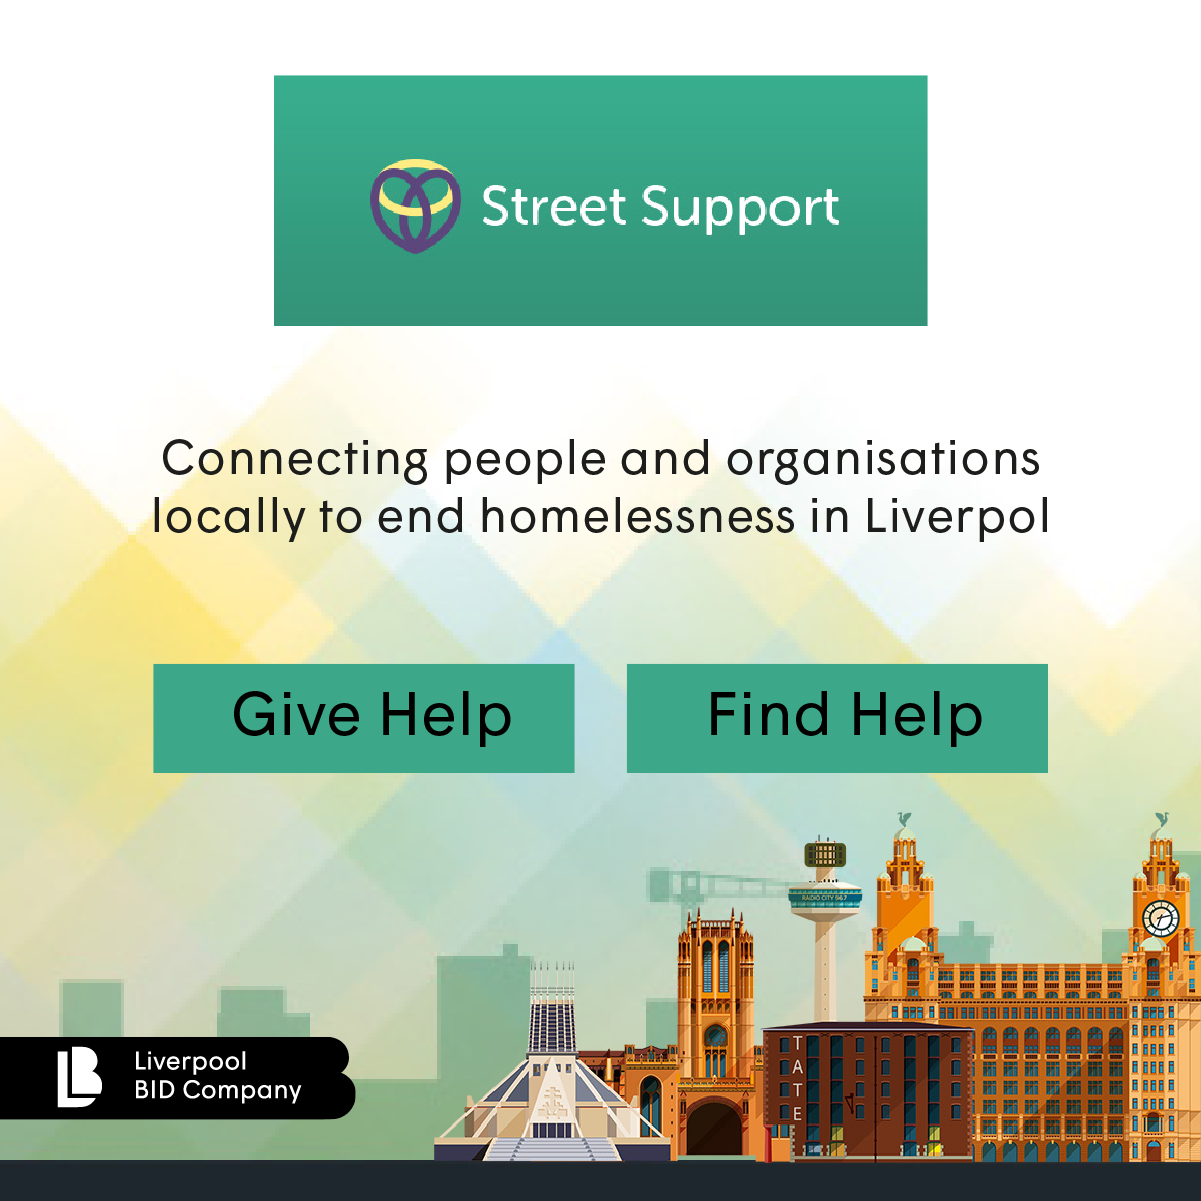 Street Support - Ending homelessness - Liverpool BID Company 2